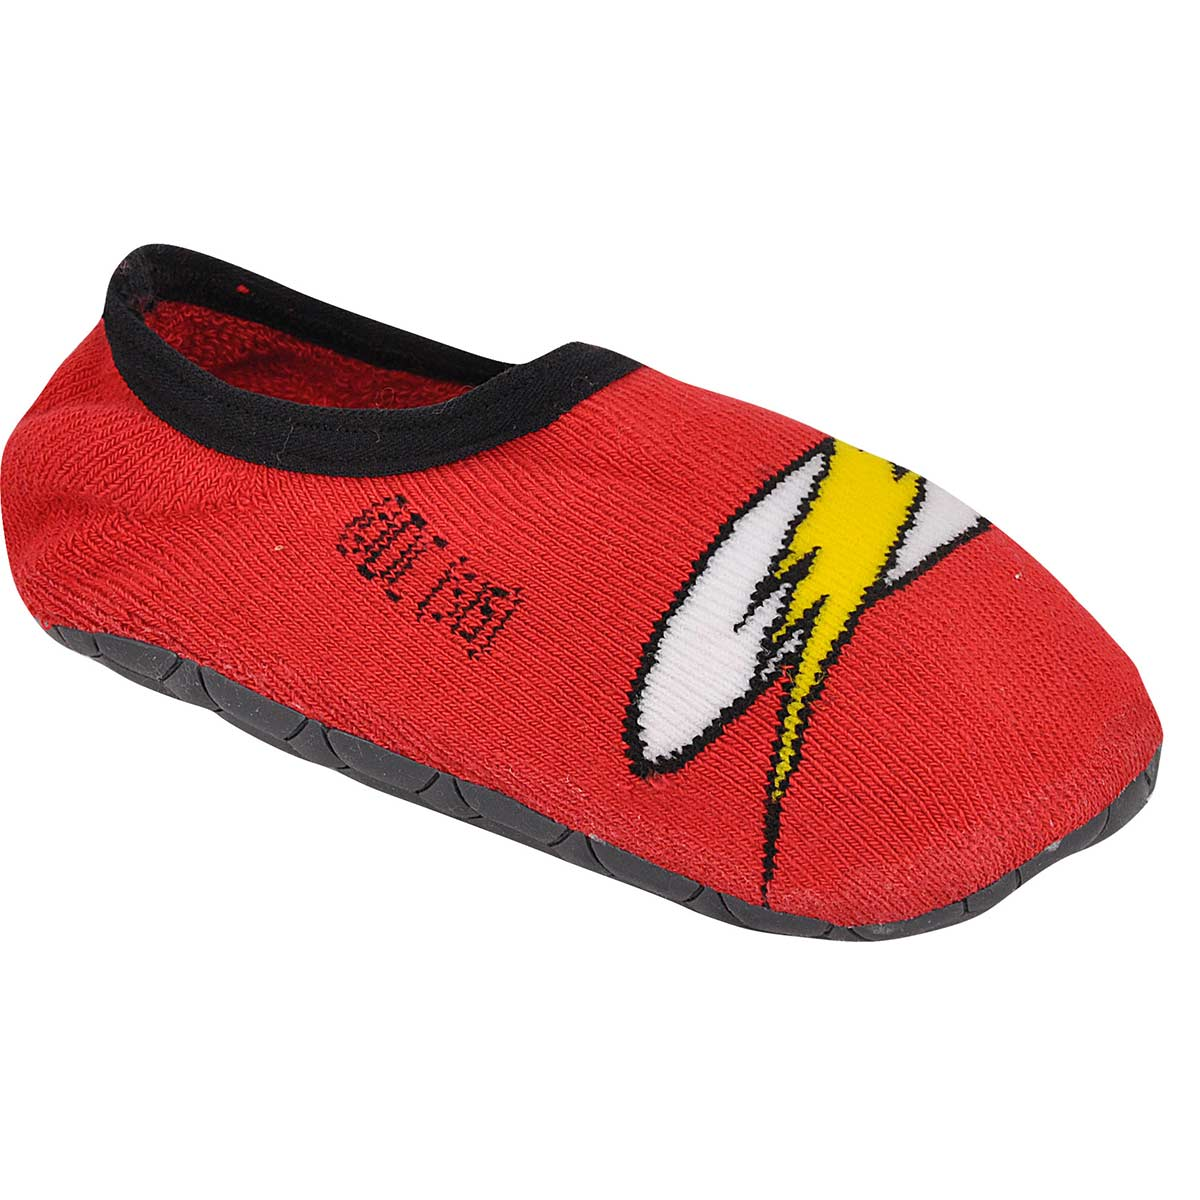 Meia Antiderrapante Infantil Cano Baixo The Flash Logo